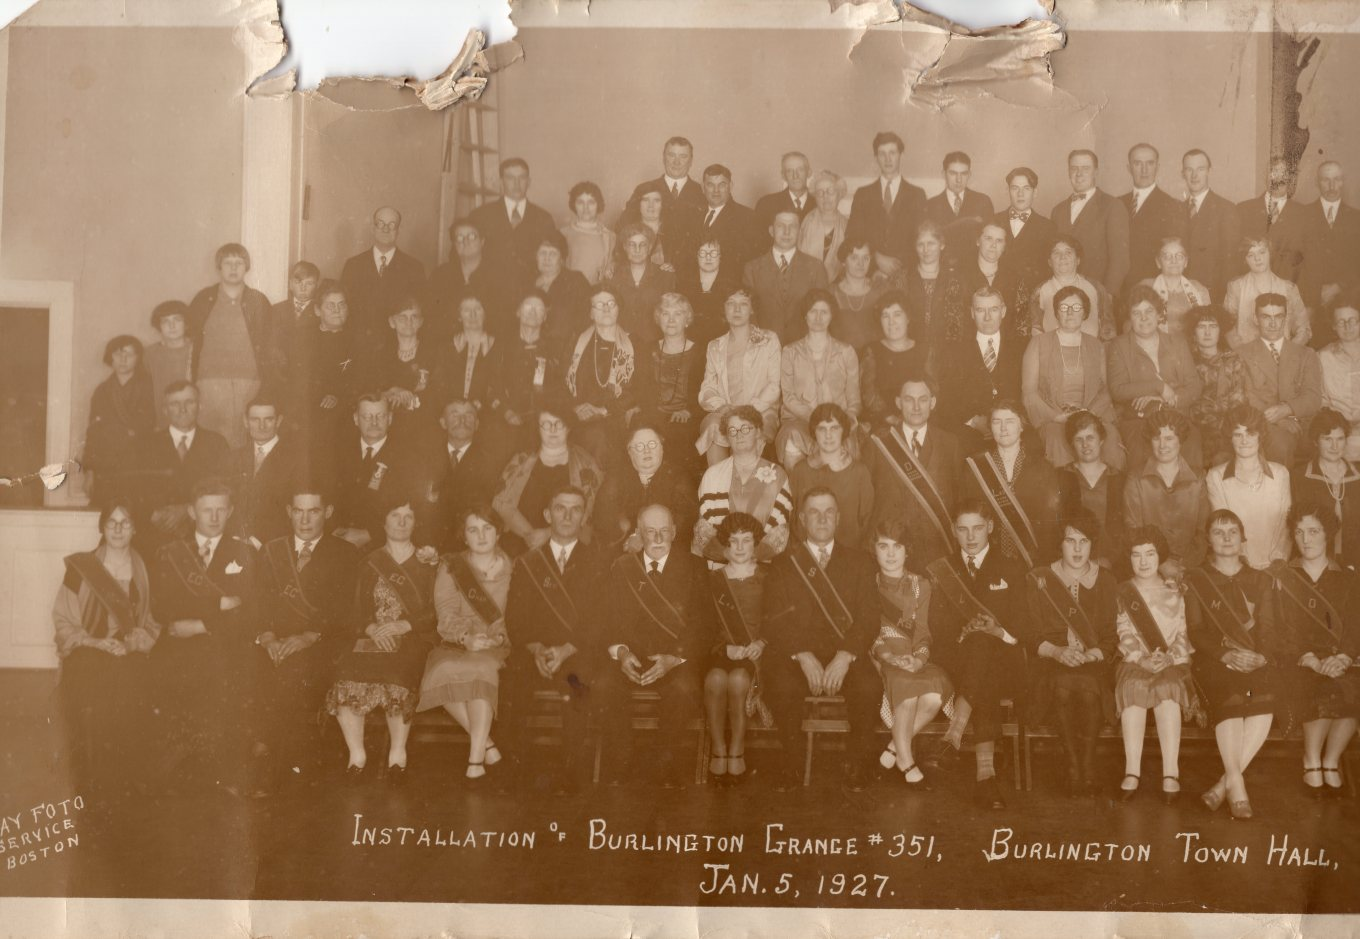 1927 Grange Burlington MA, left side. Photo credit: Dorothy Bennett